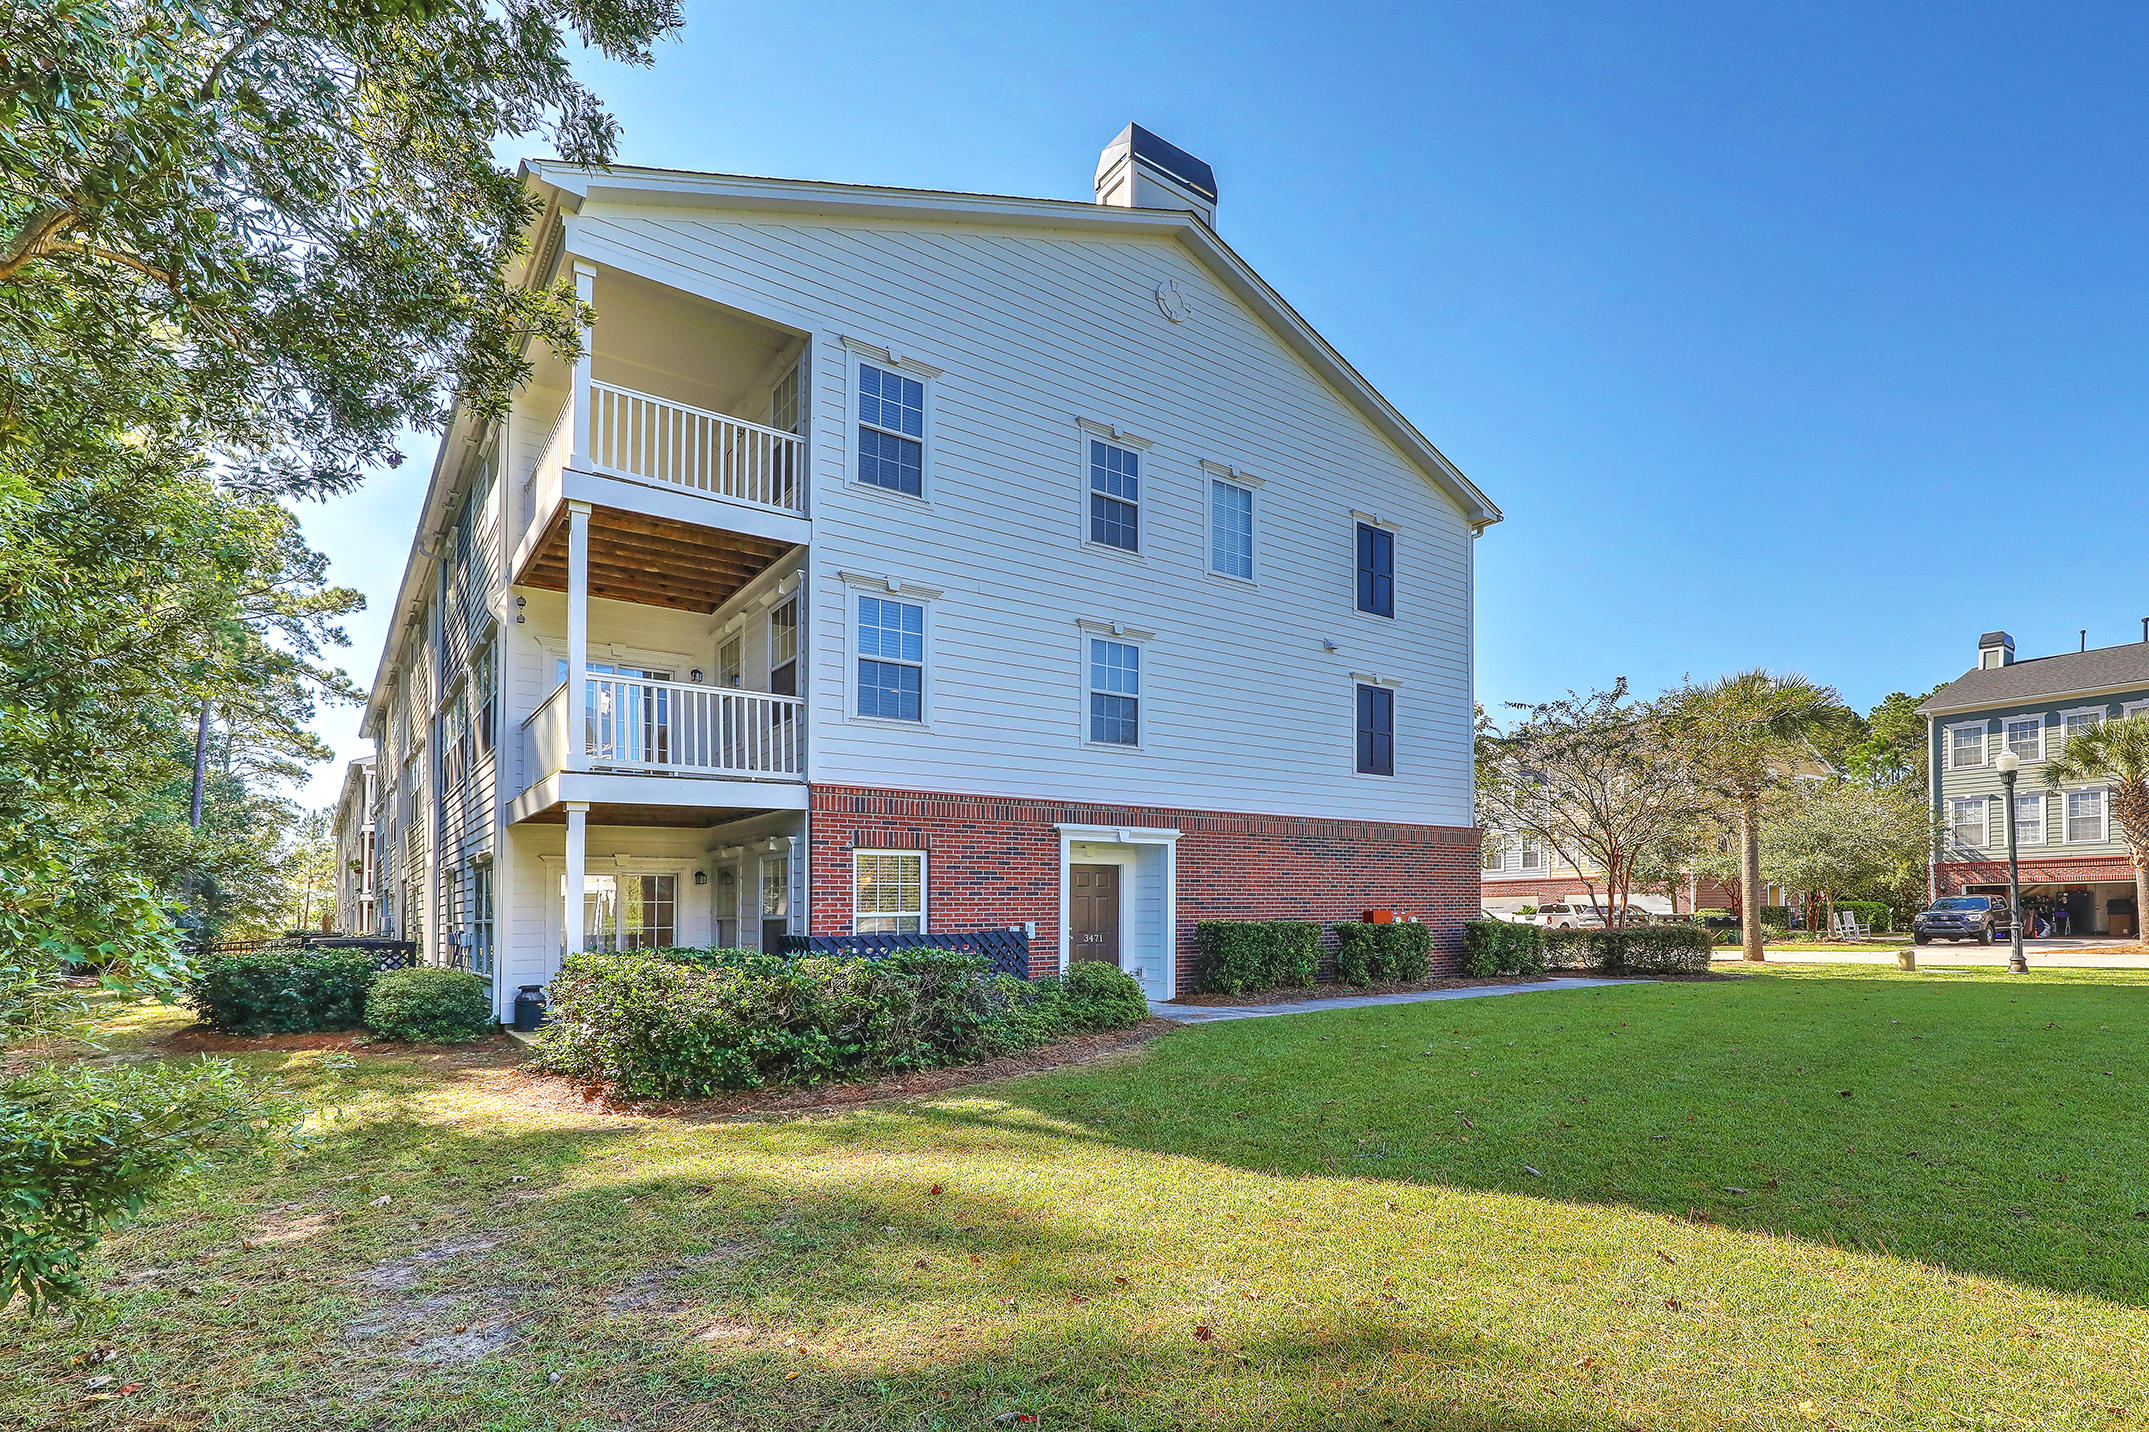 Kensington at Park West Homes For Sale - 3471 Claremont, Mount Pleasant, SC - 31